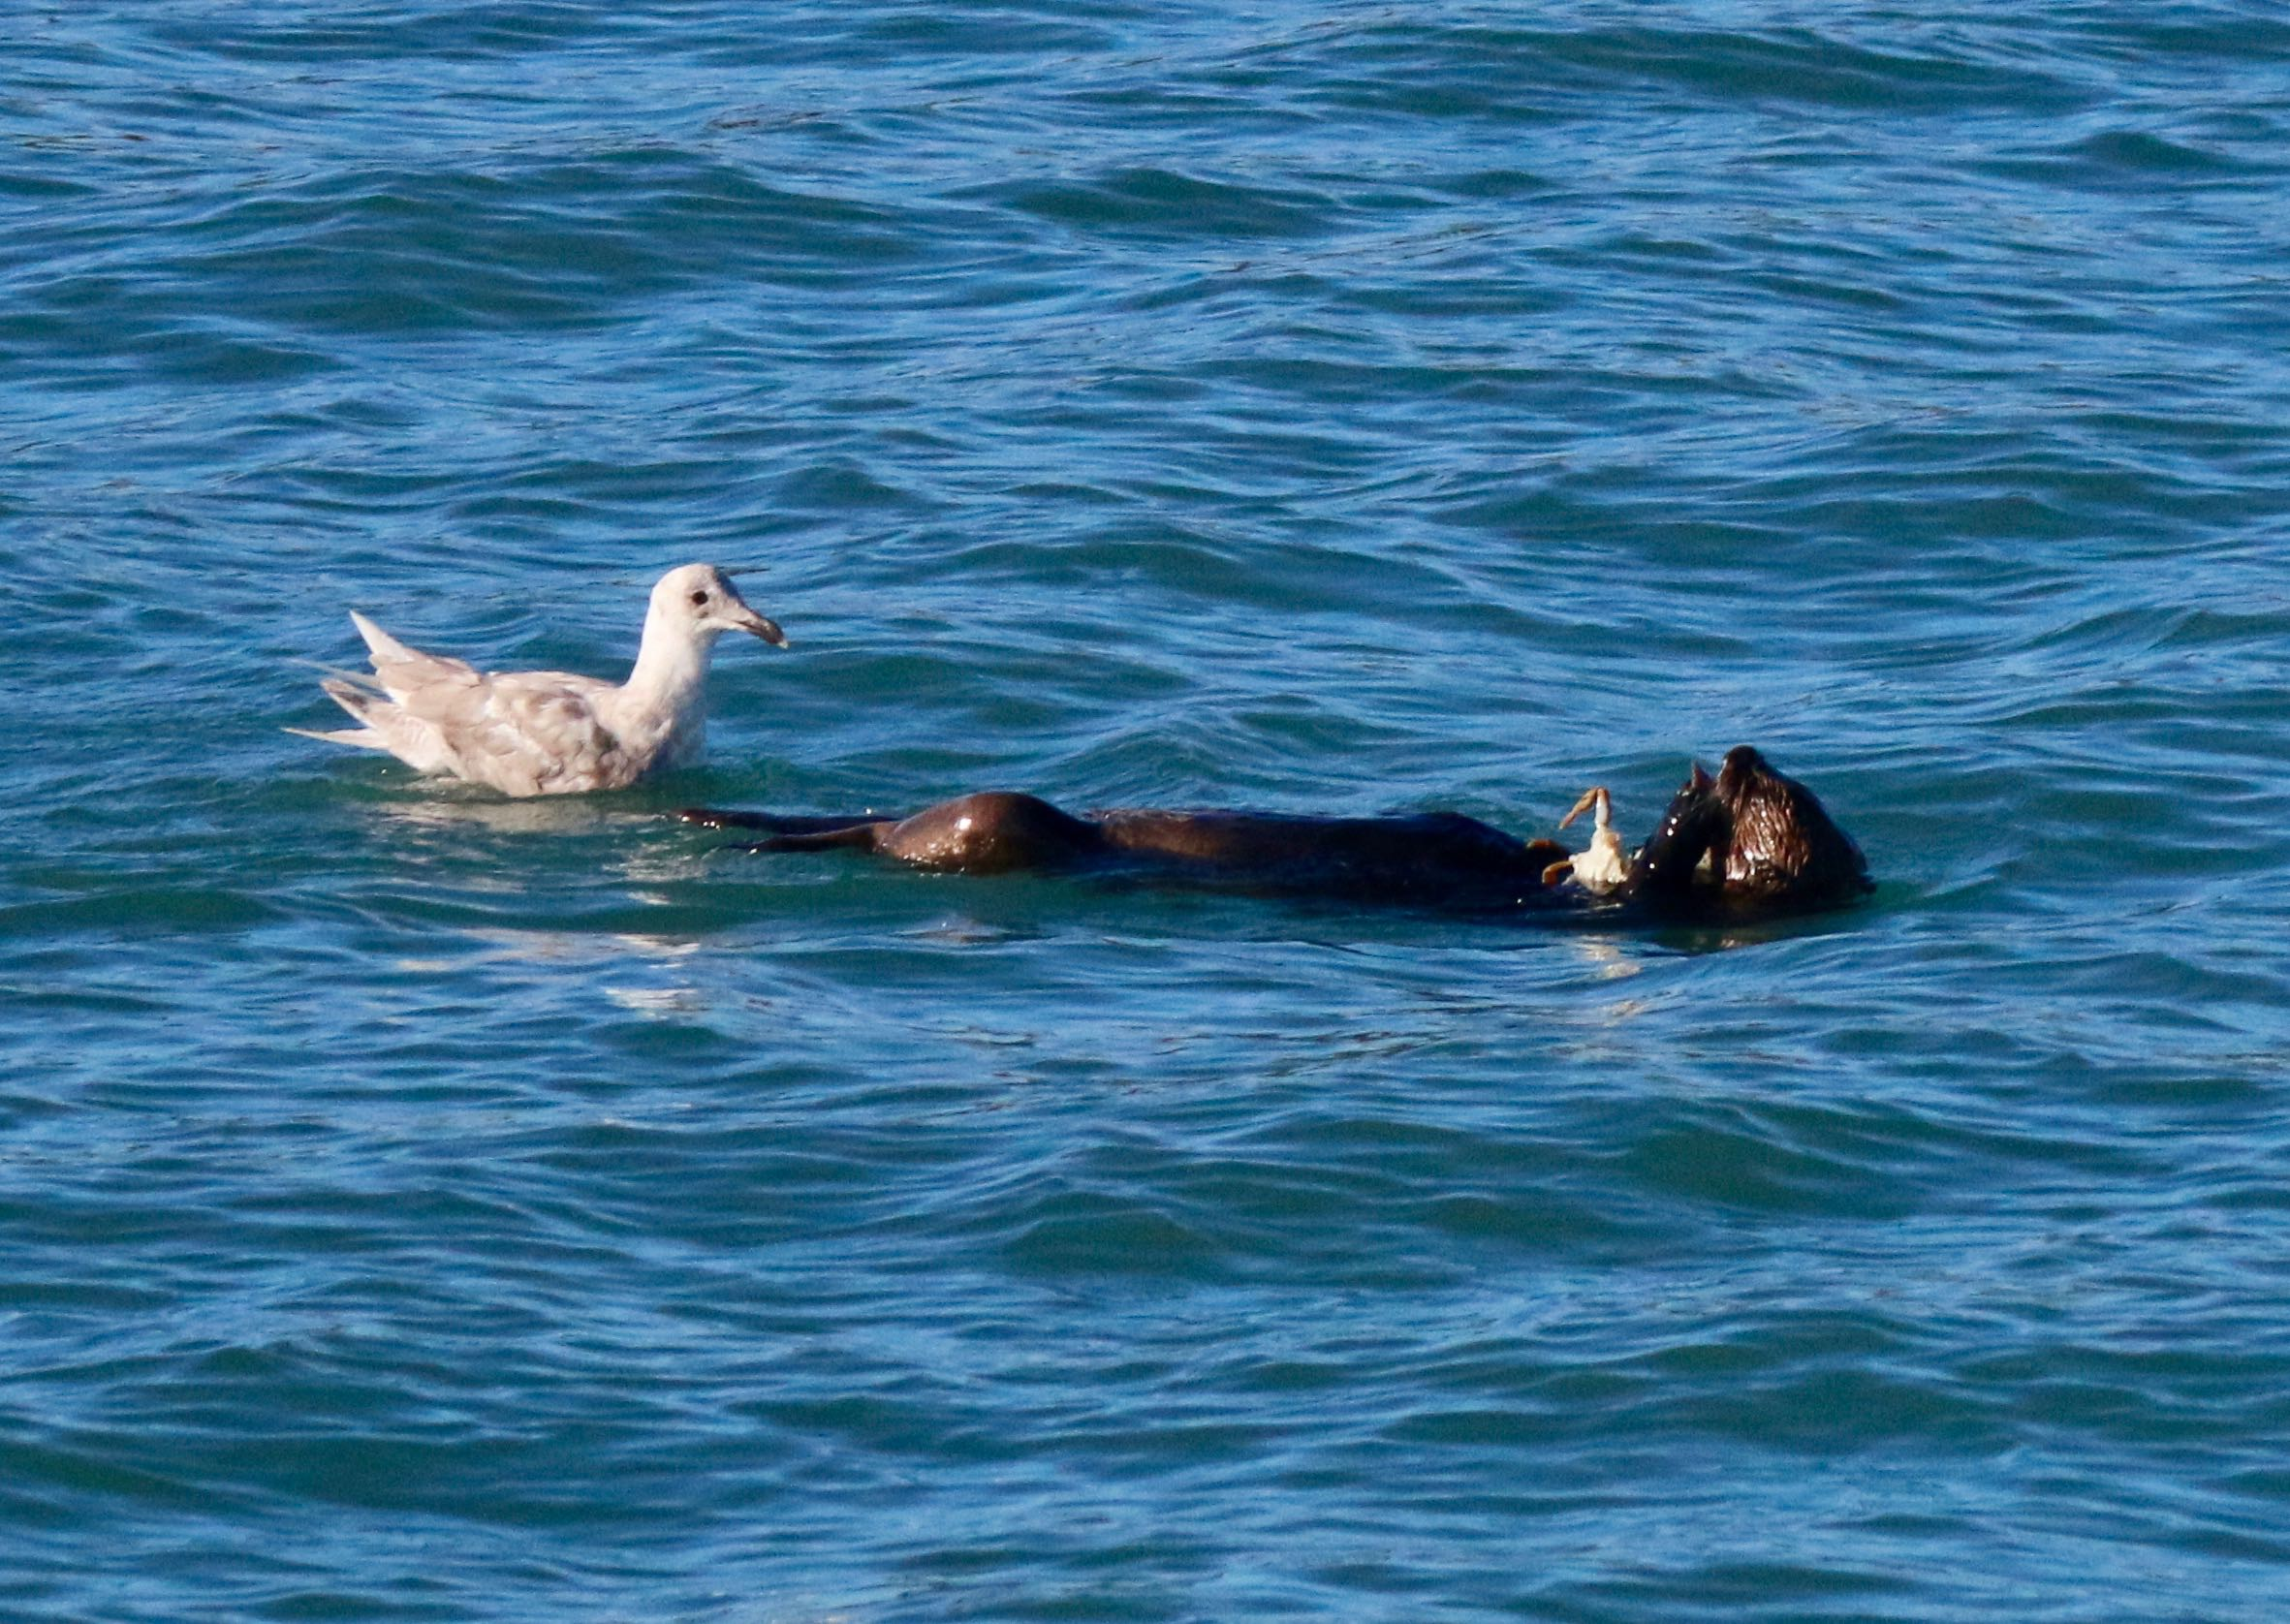 Sea otter lunching on crab in Homer boat basin. Sea gull hopeful for leftovers.